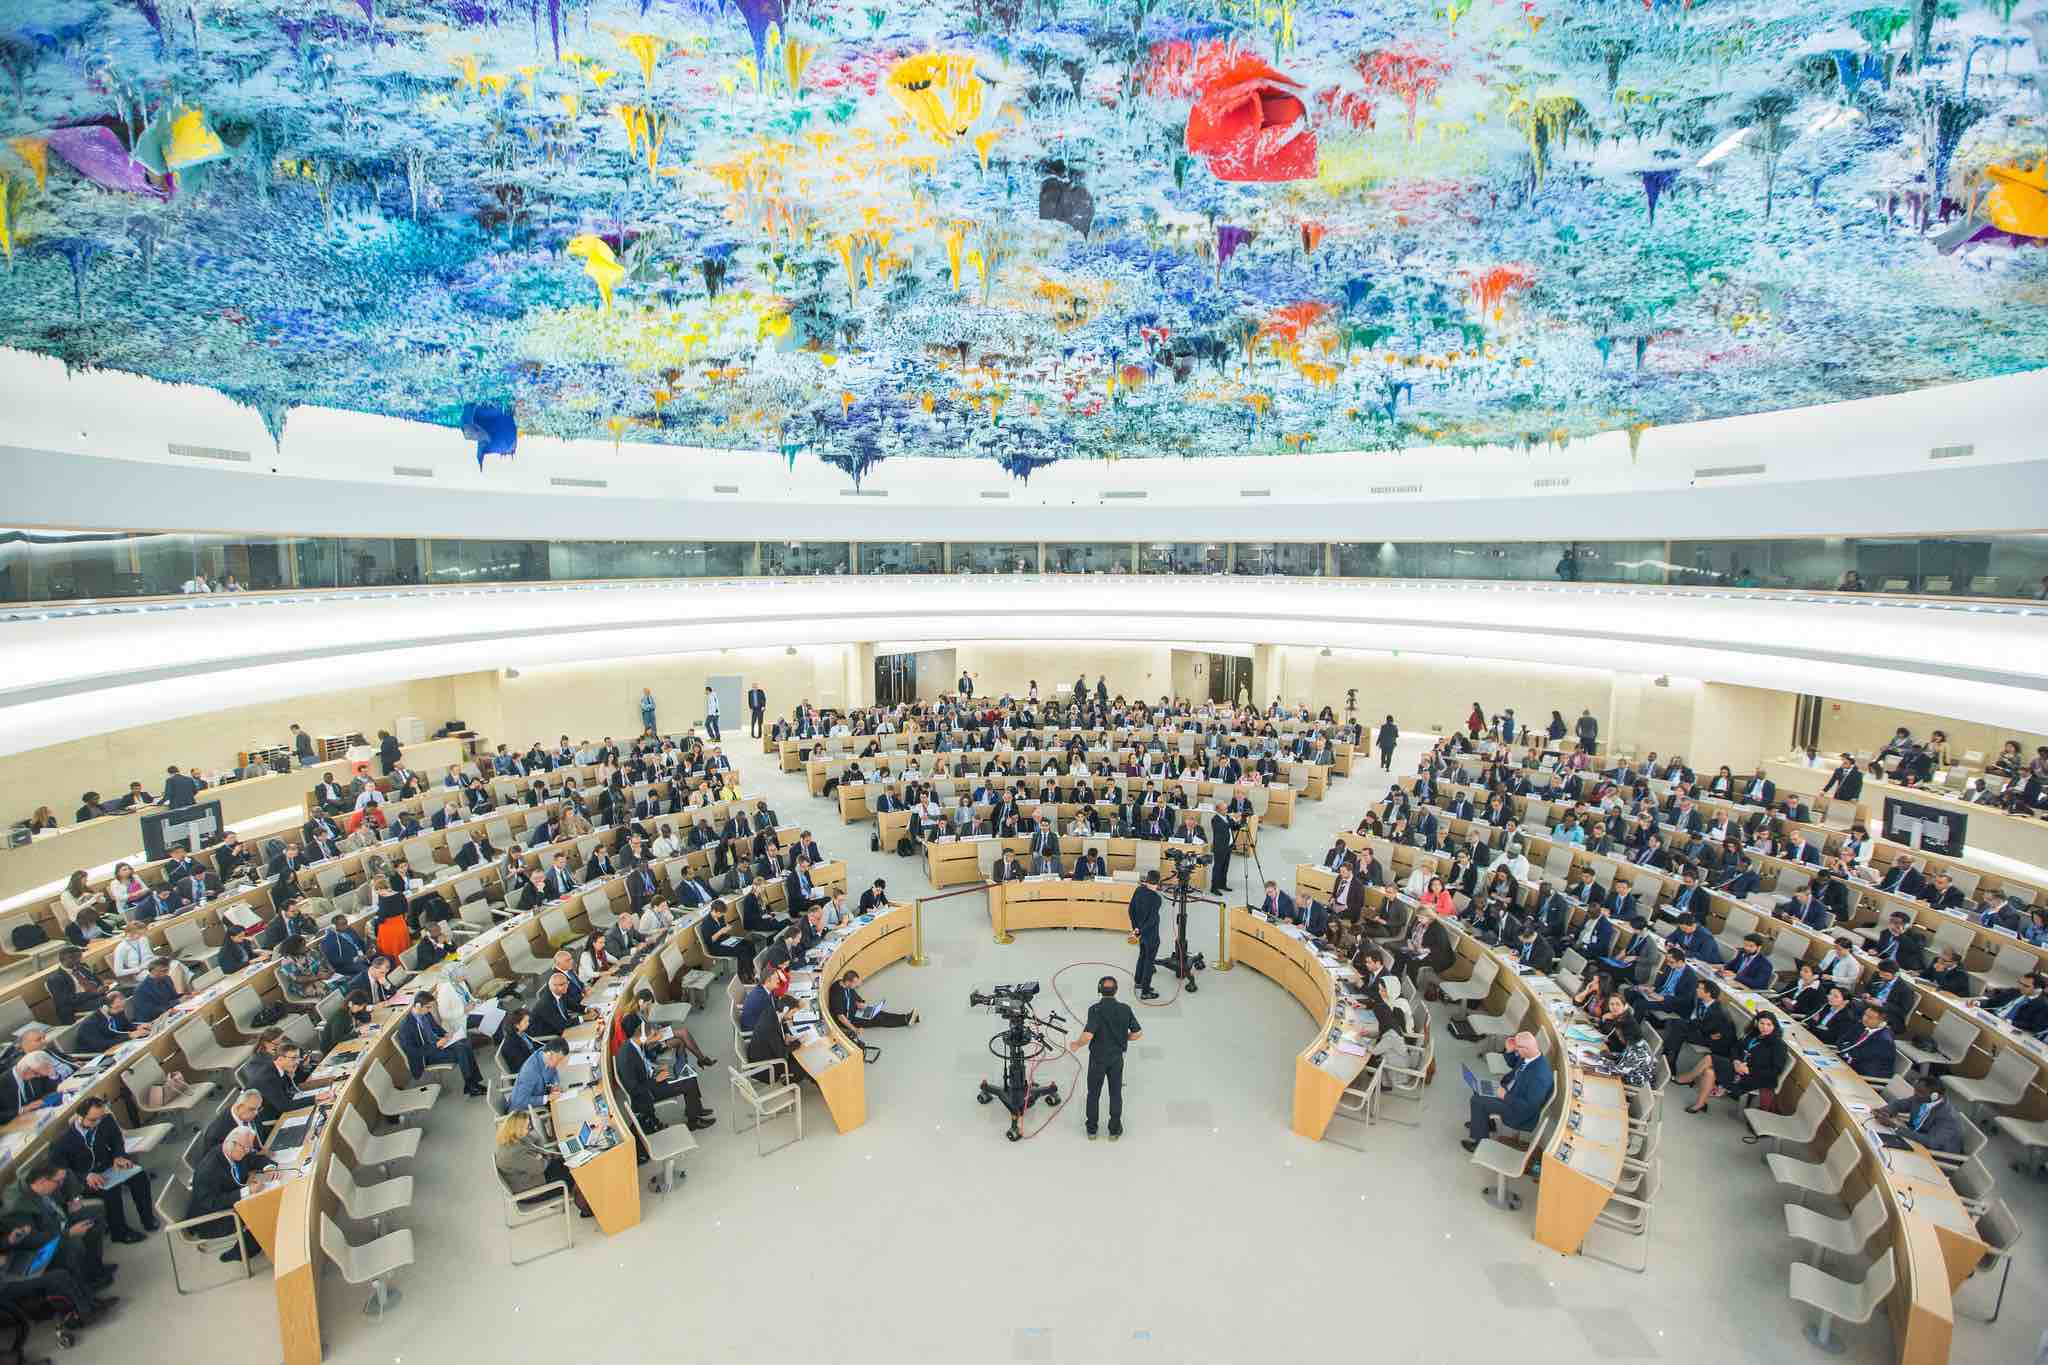 Human Rights Council special session on the situation in Palestine